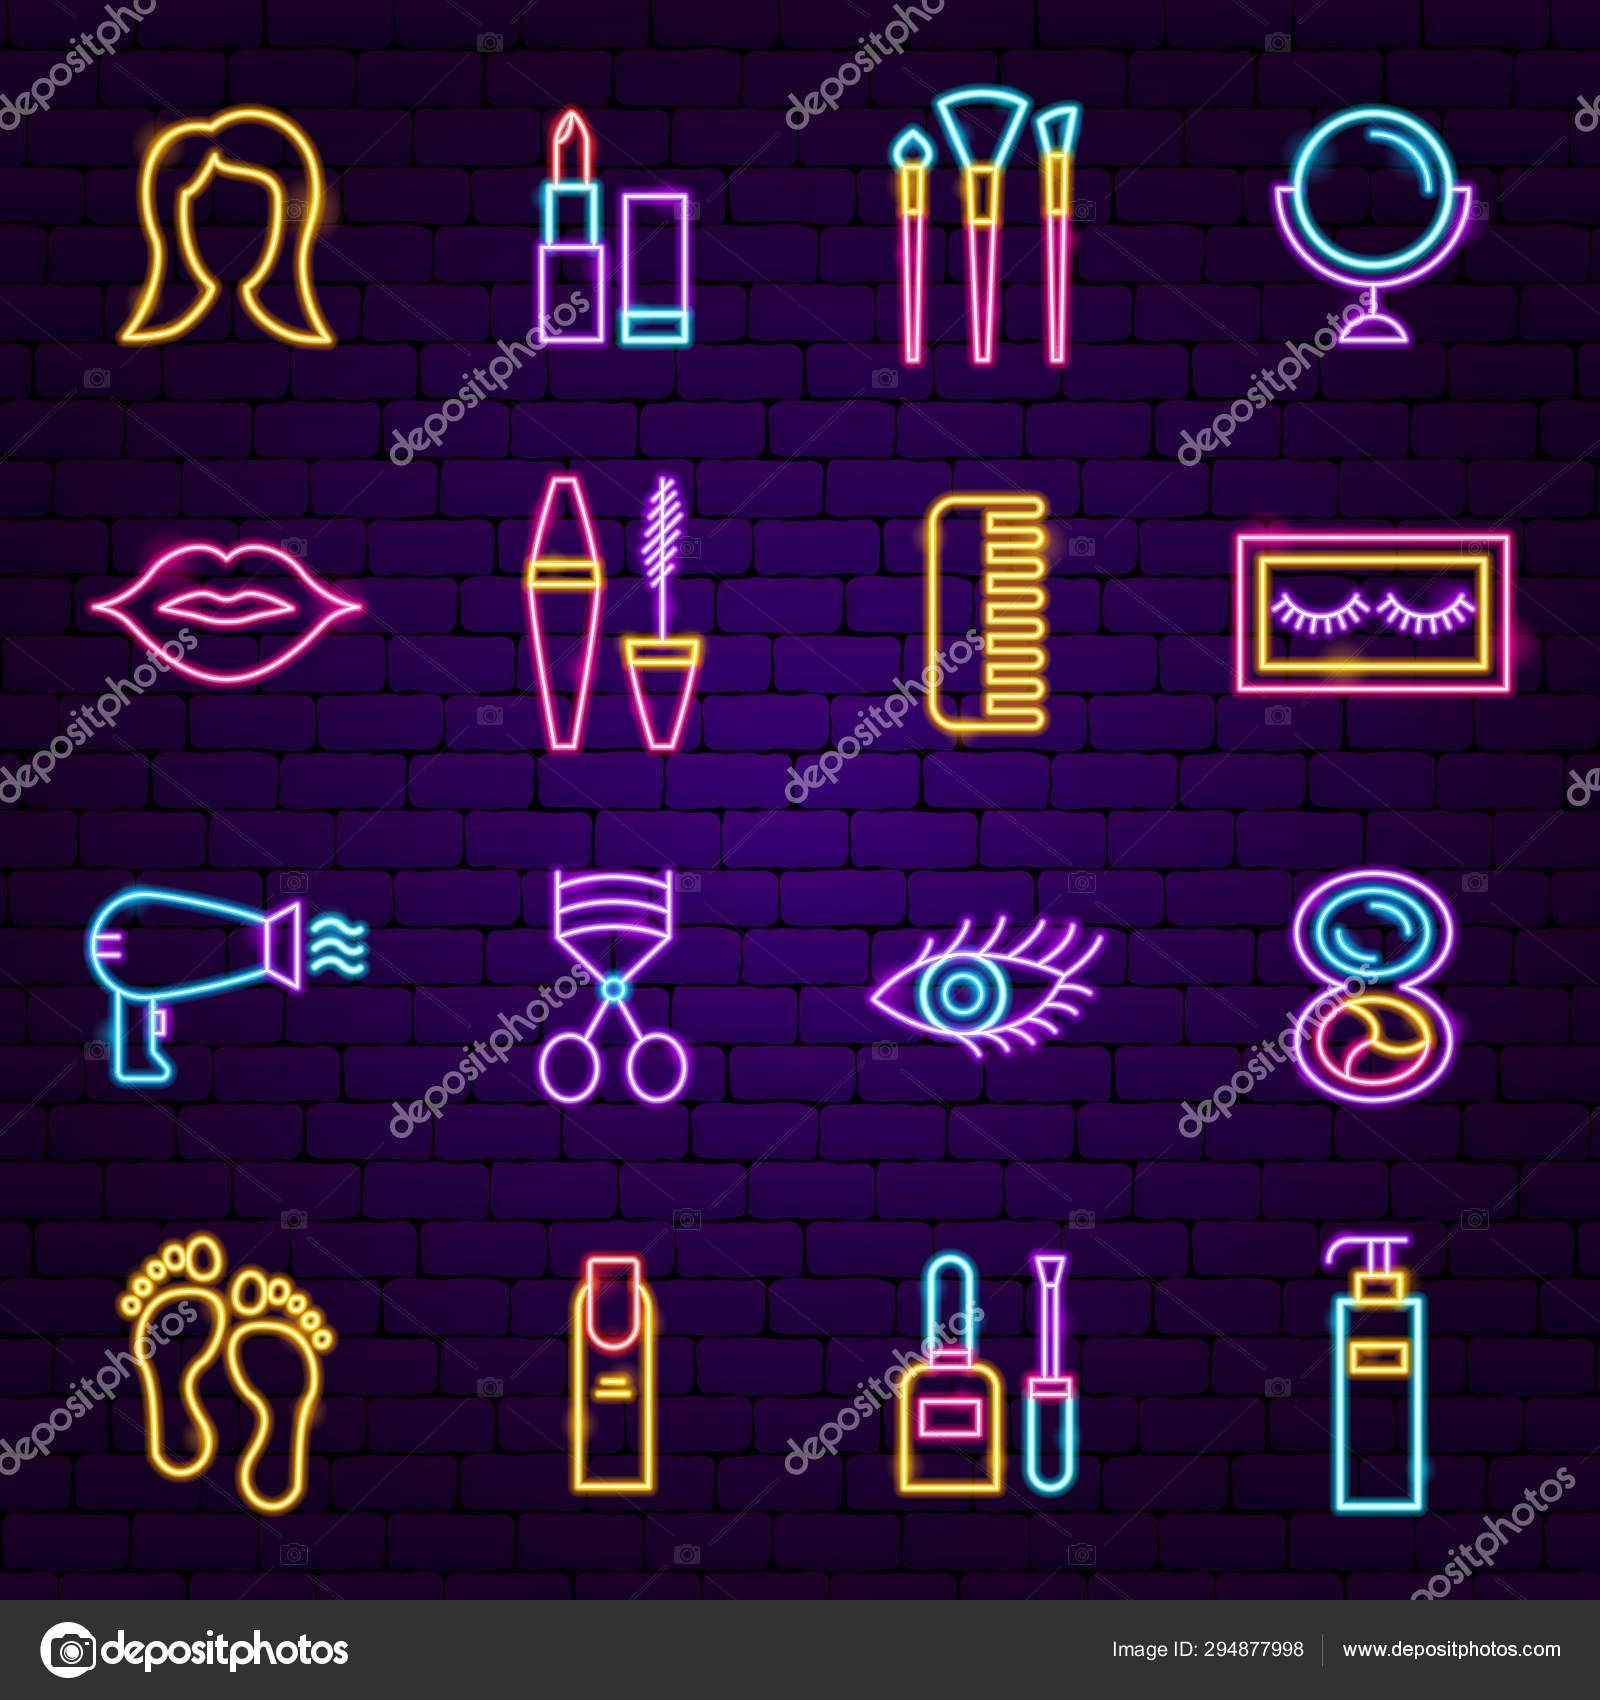 Download Cosmetics Neon Icons — Stock Illustration in